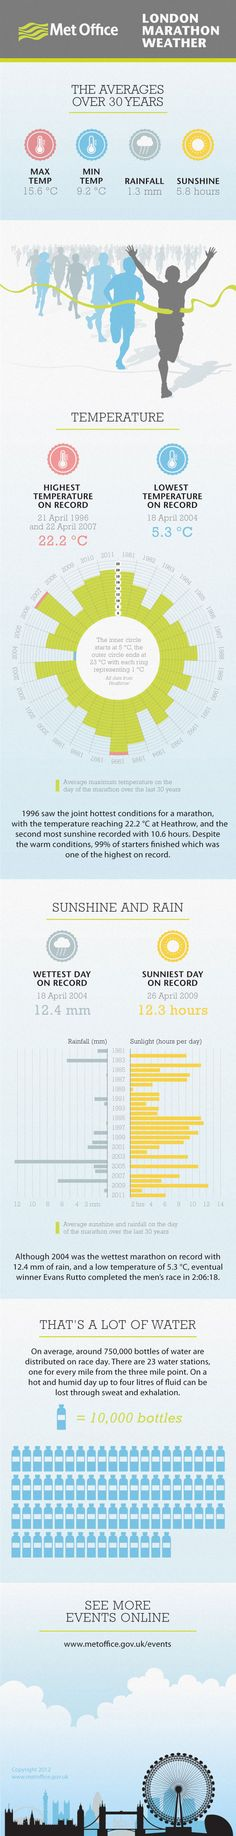 London Marathon Weather infogram from the Met Office.